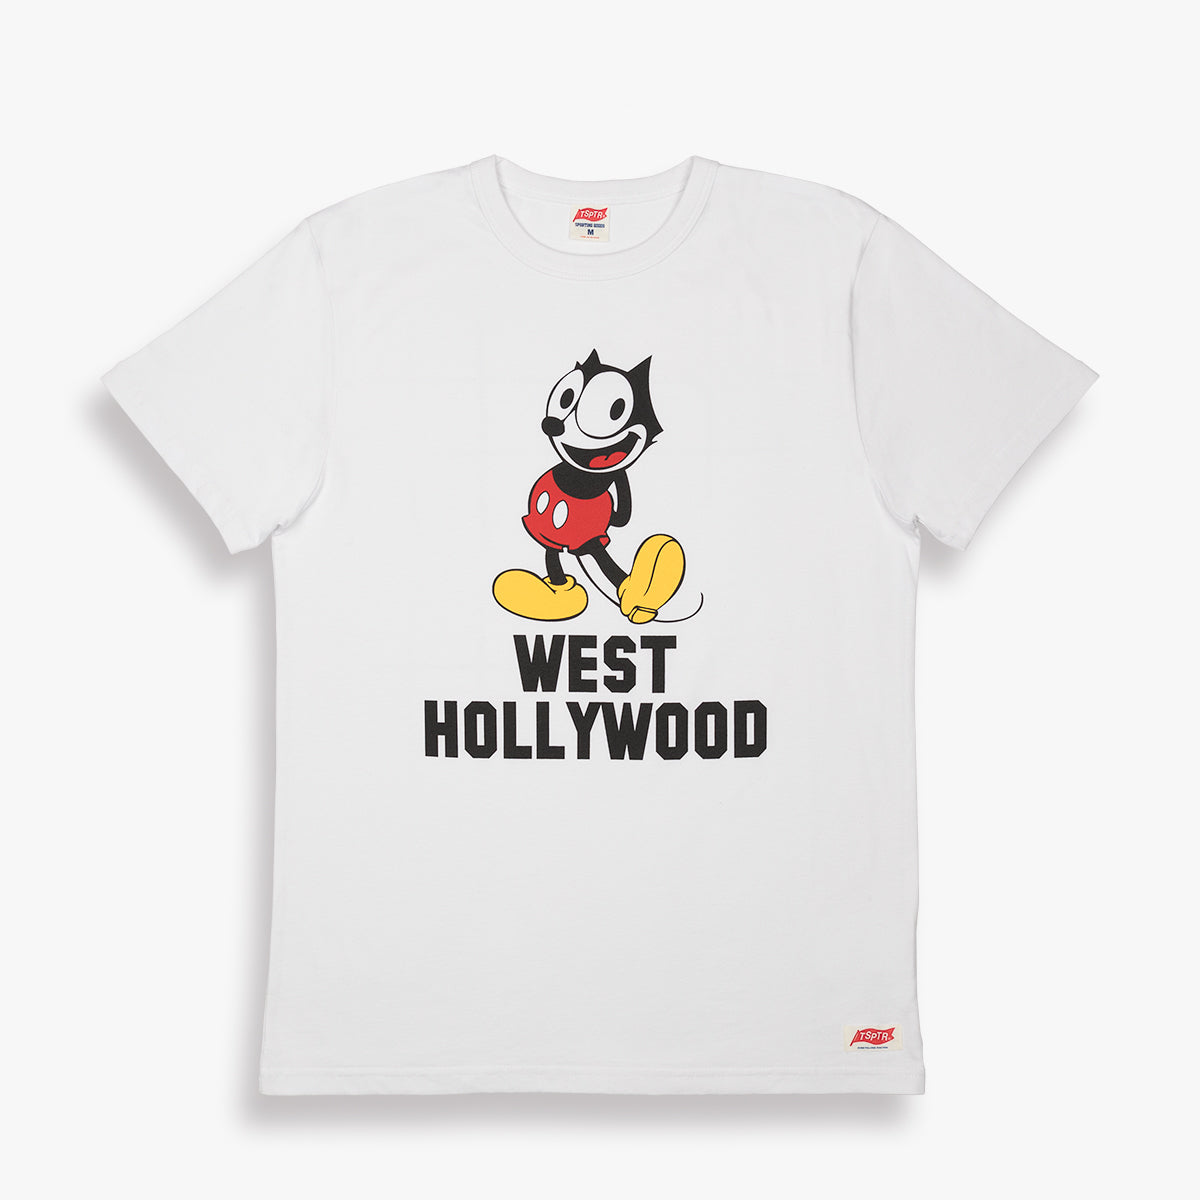 WEST HOLLYWOOD TEE